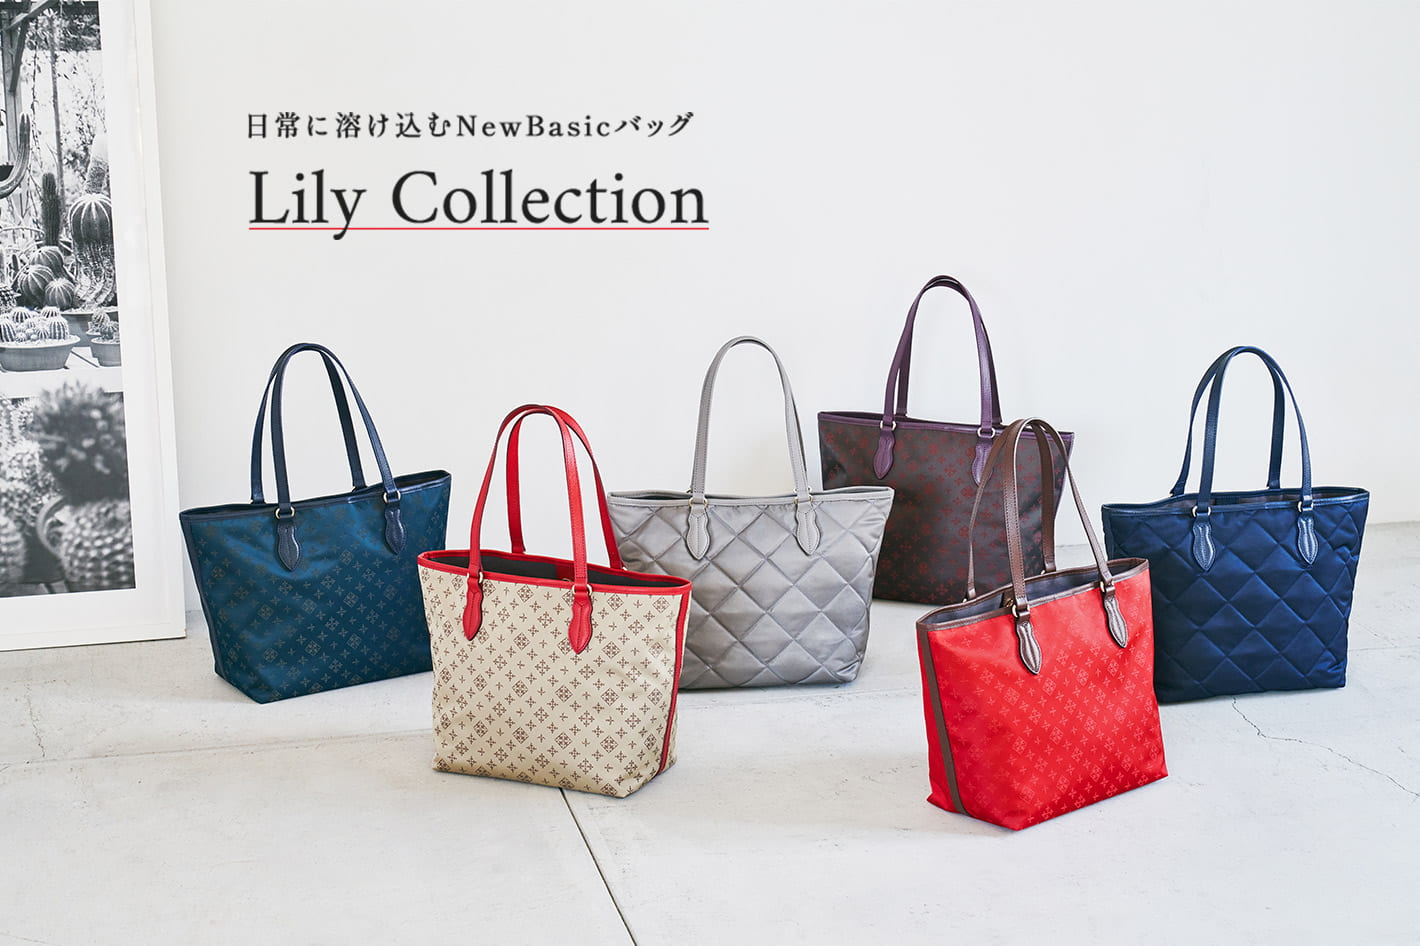 russet Lily Collection -日常に溶け込むNew Basicバッグ-